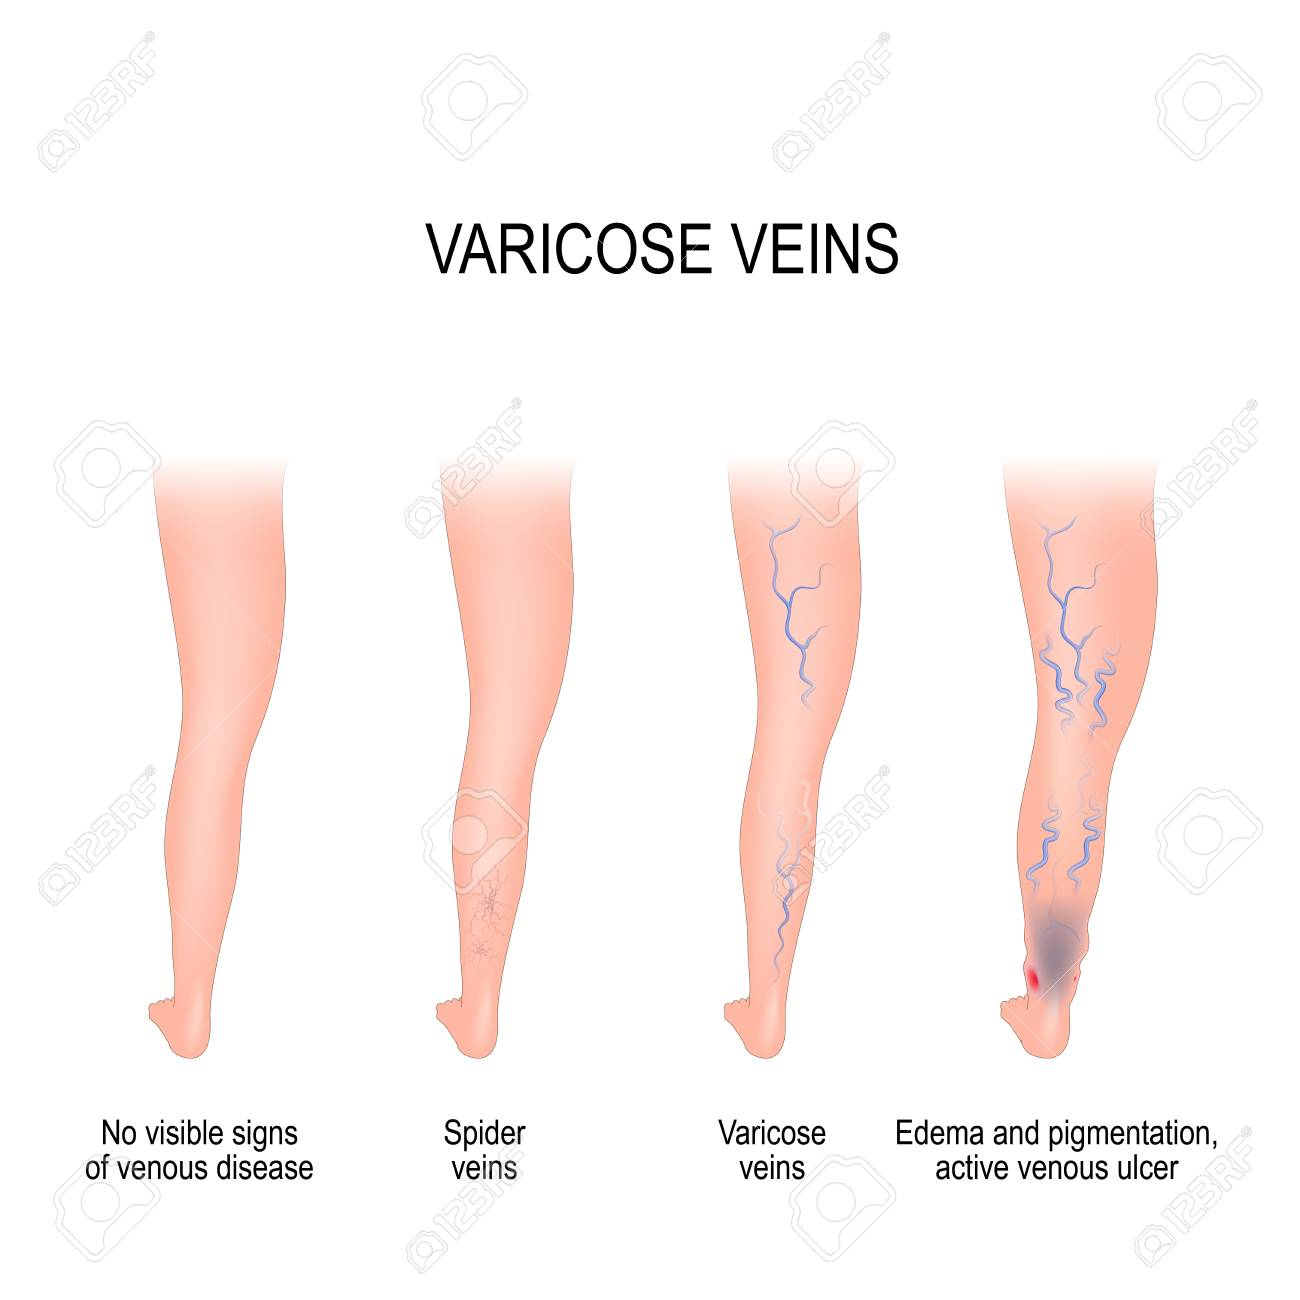 stages of varicose from no visible signs of venous disease tostages of varicose from no visible signs of venous disease to spider veins, edema